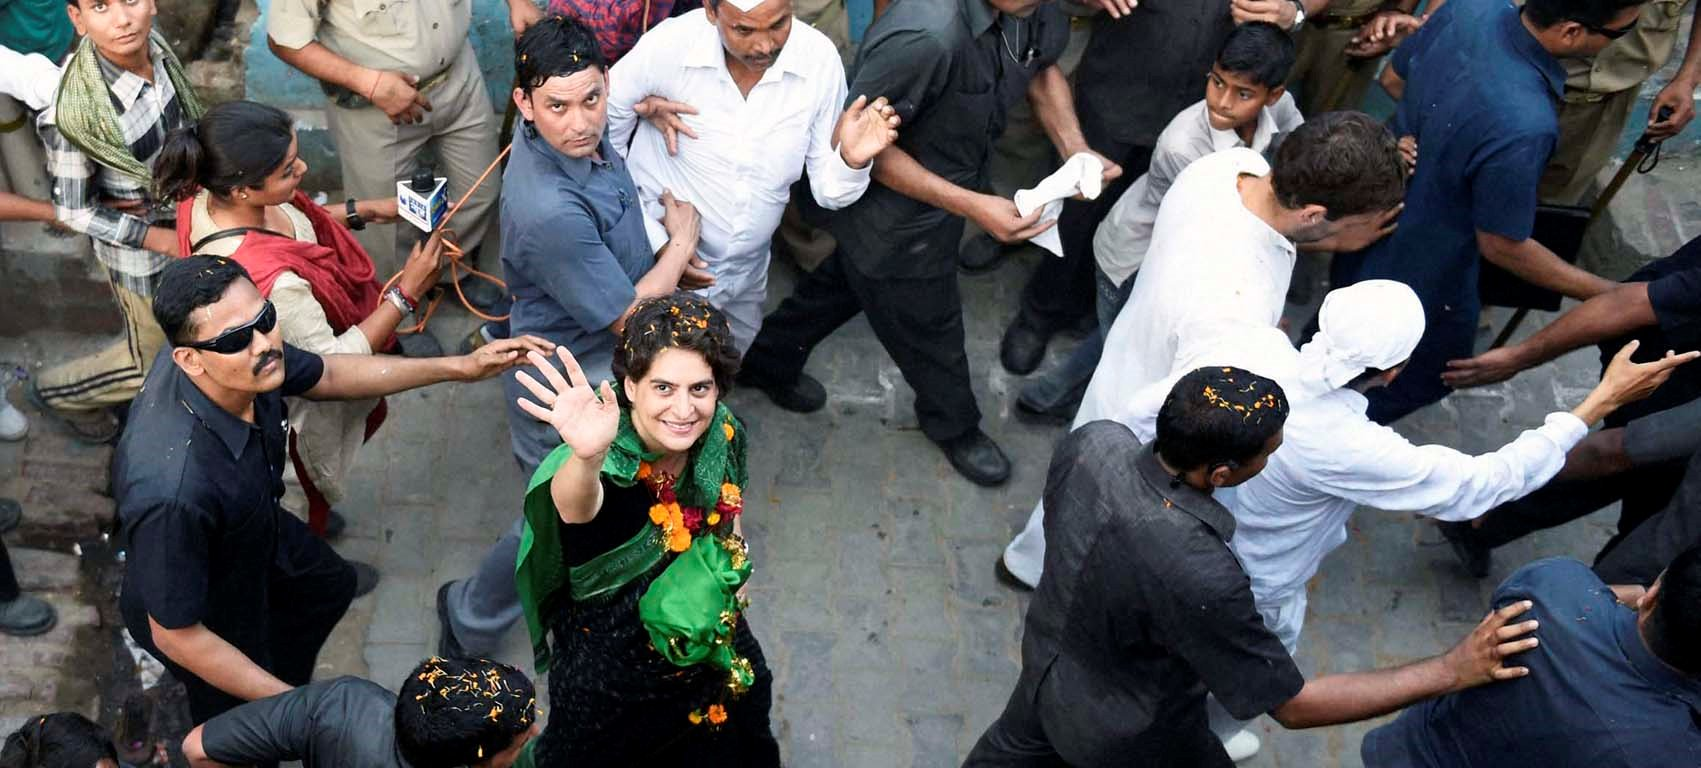 Happy Birthday Priyanka Gandhi ! :)